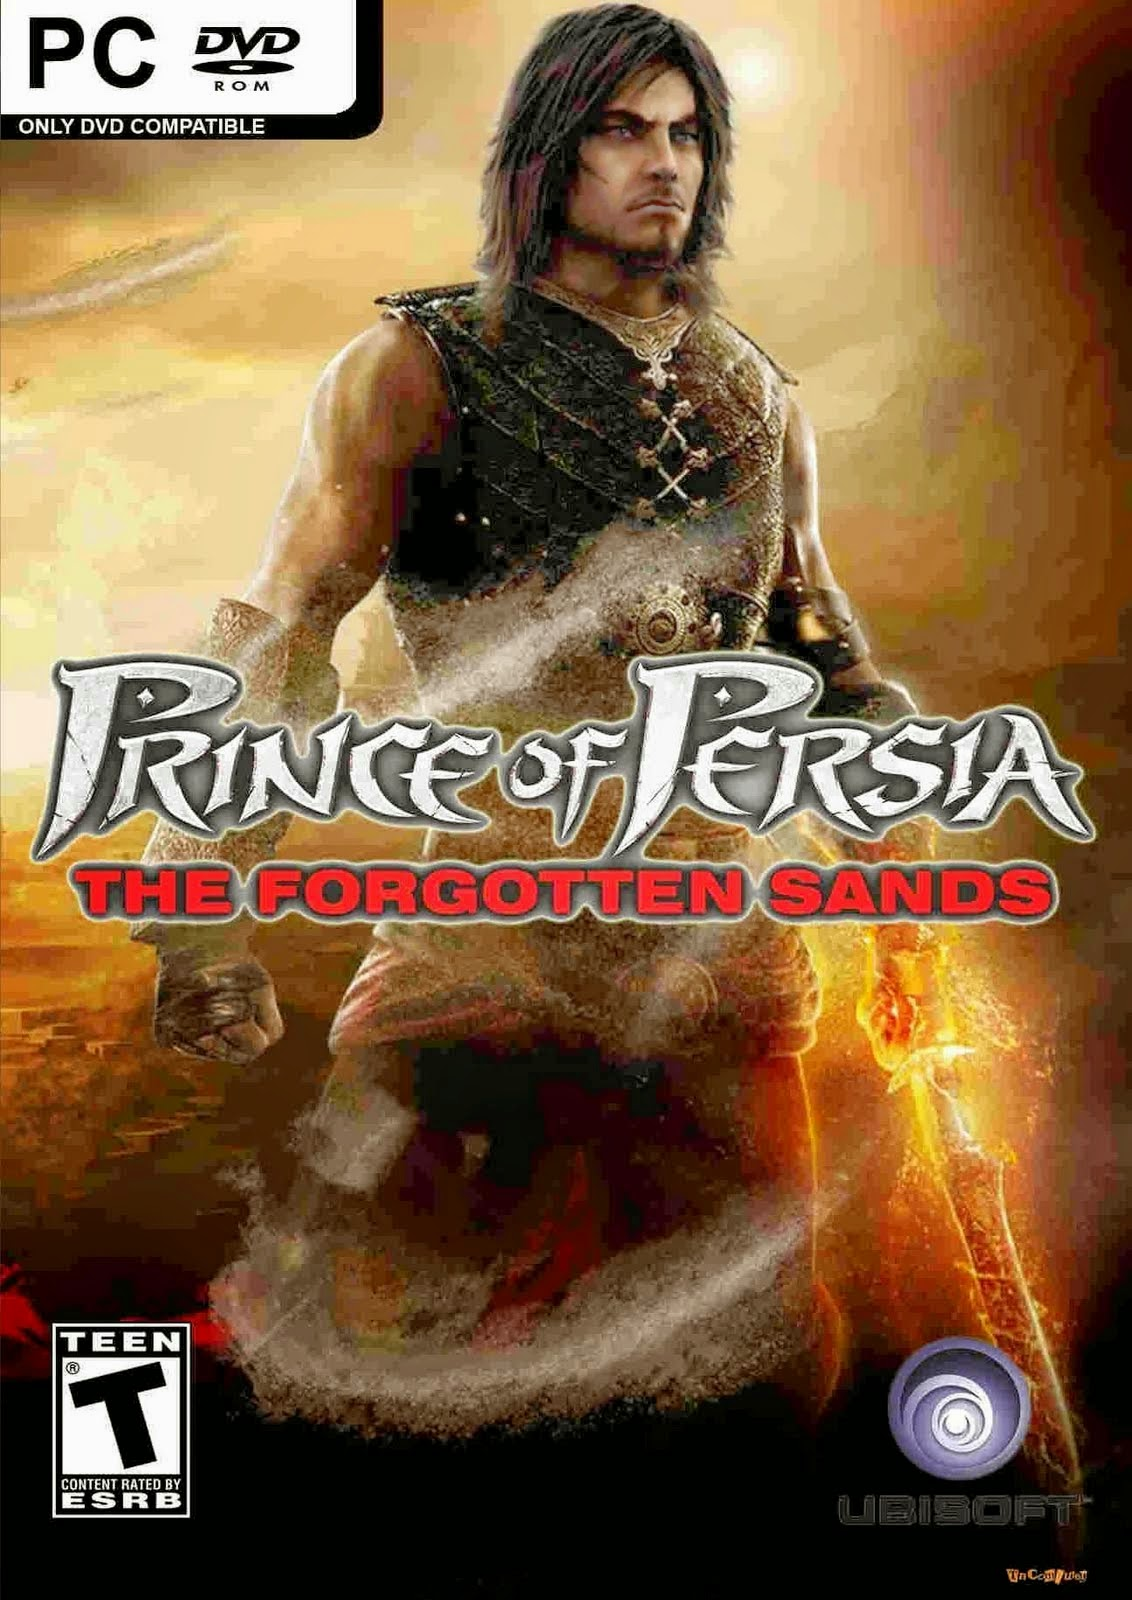 Download Prince of Persia The Forgotten Sands Full Version PC